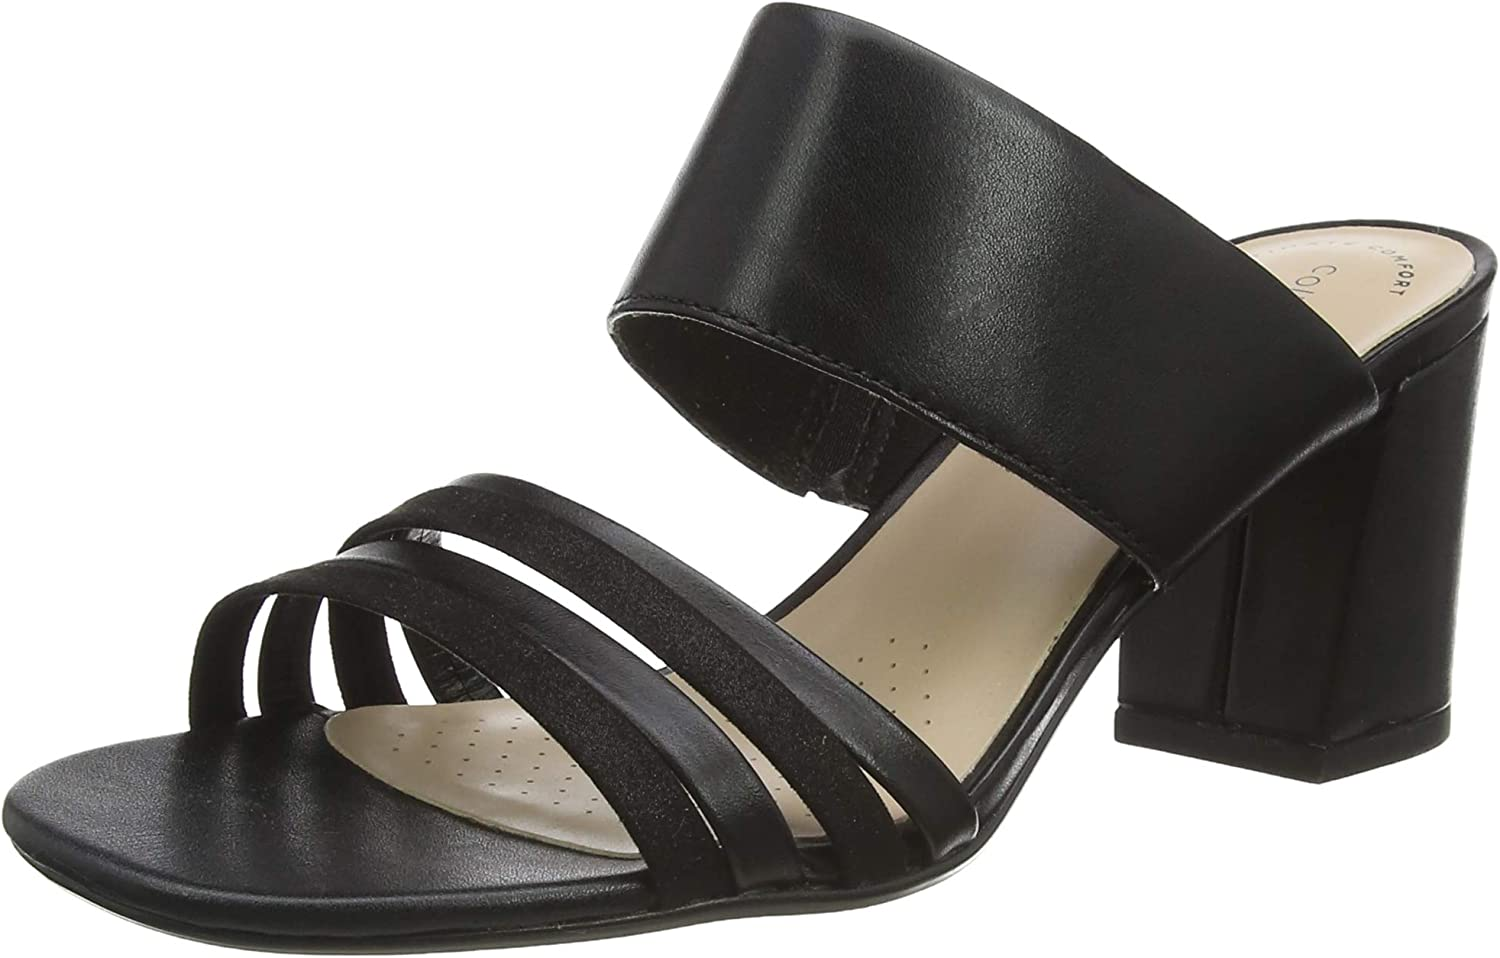 Clarks Women's Max 54% OFF Direct store Strappy Pumps Sandal Heeled